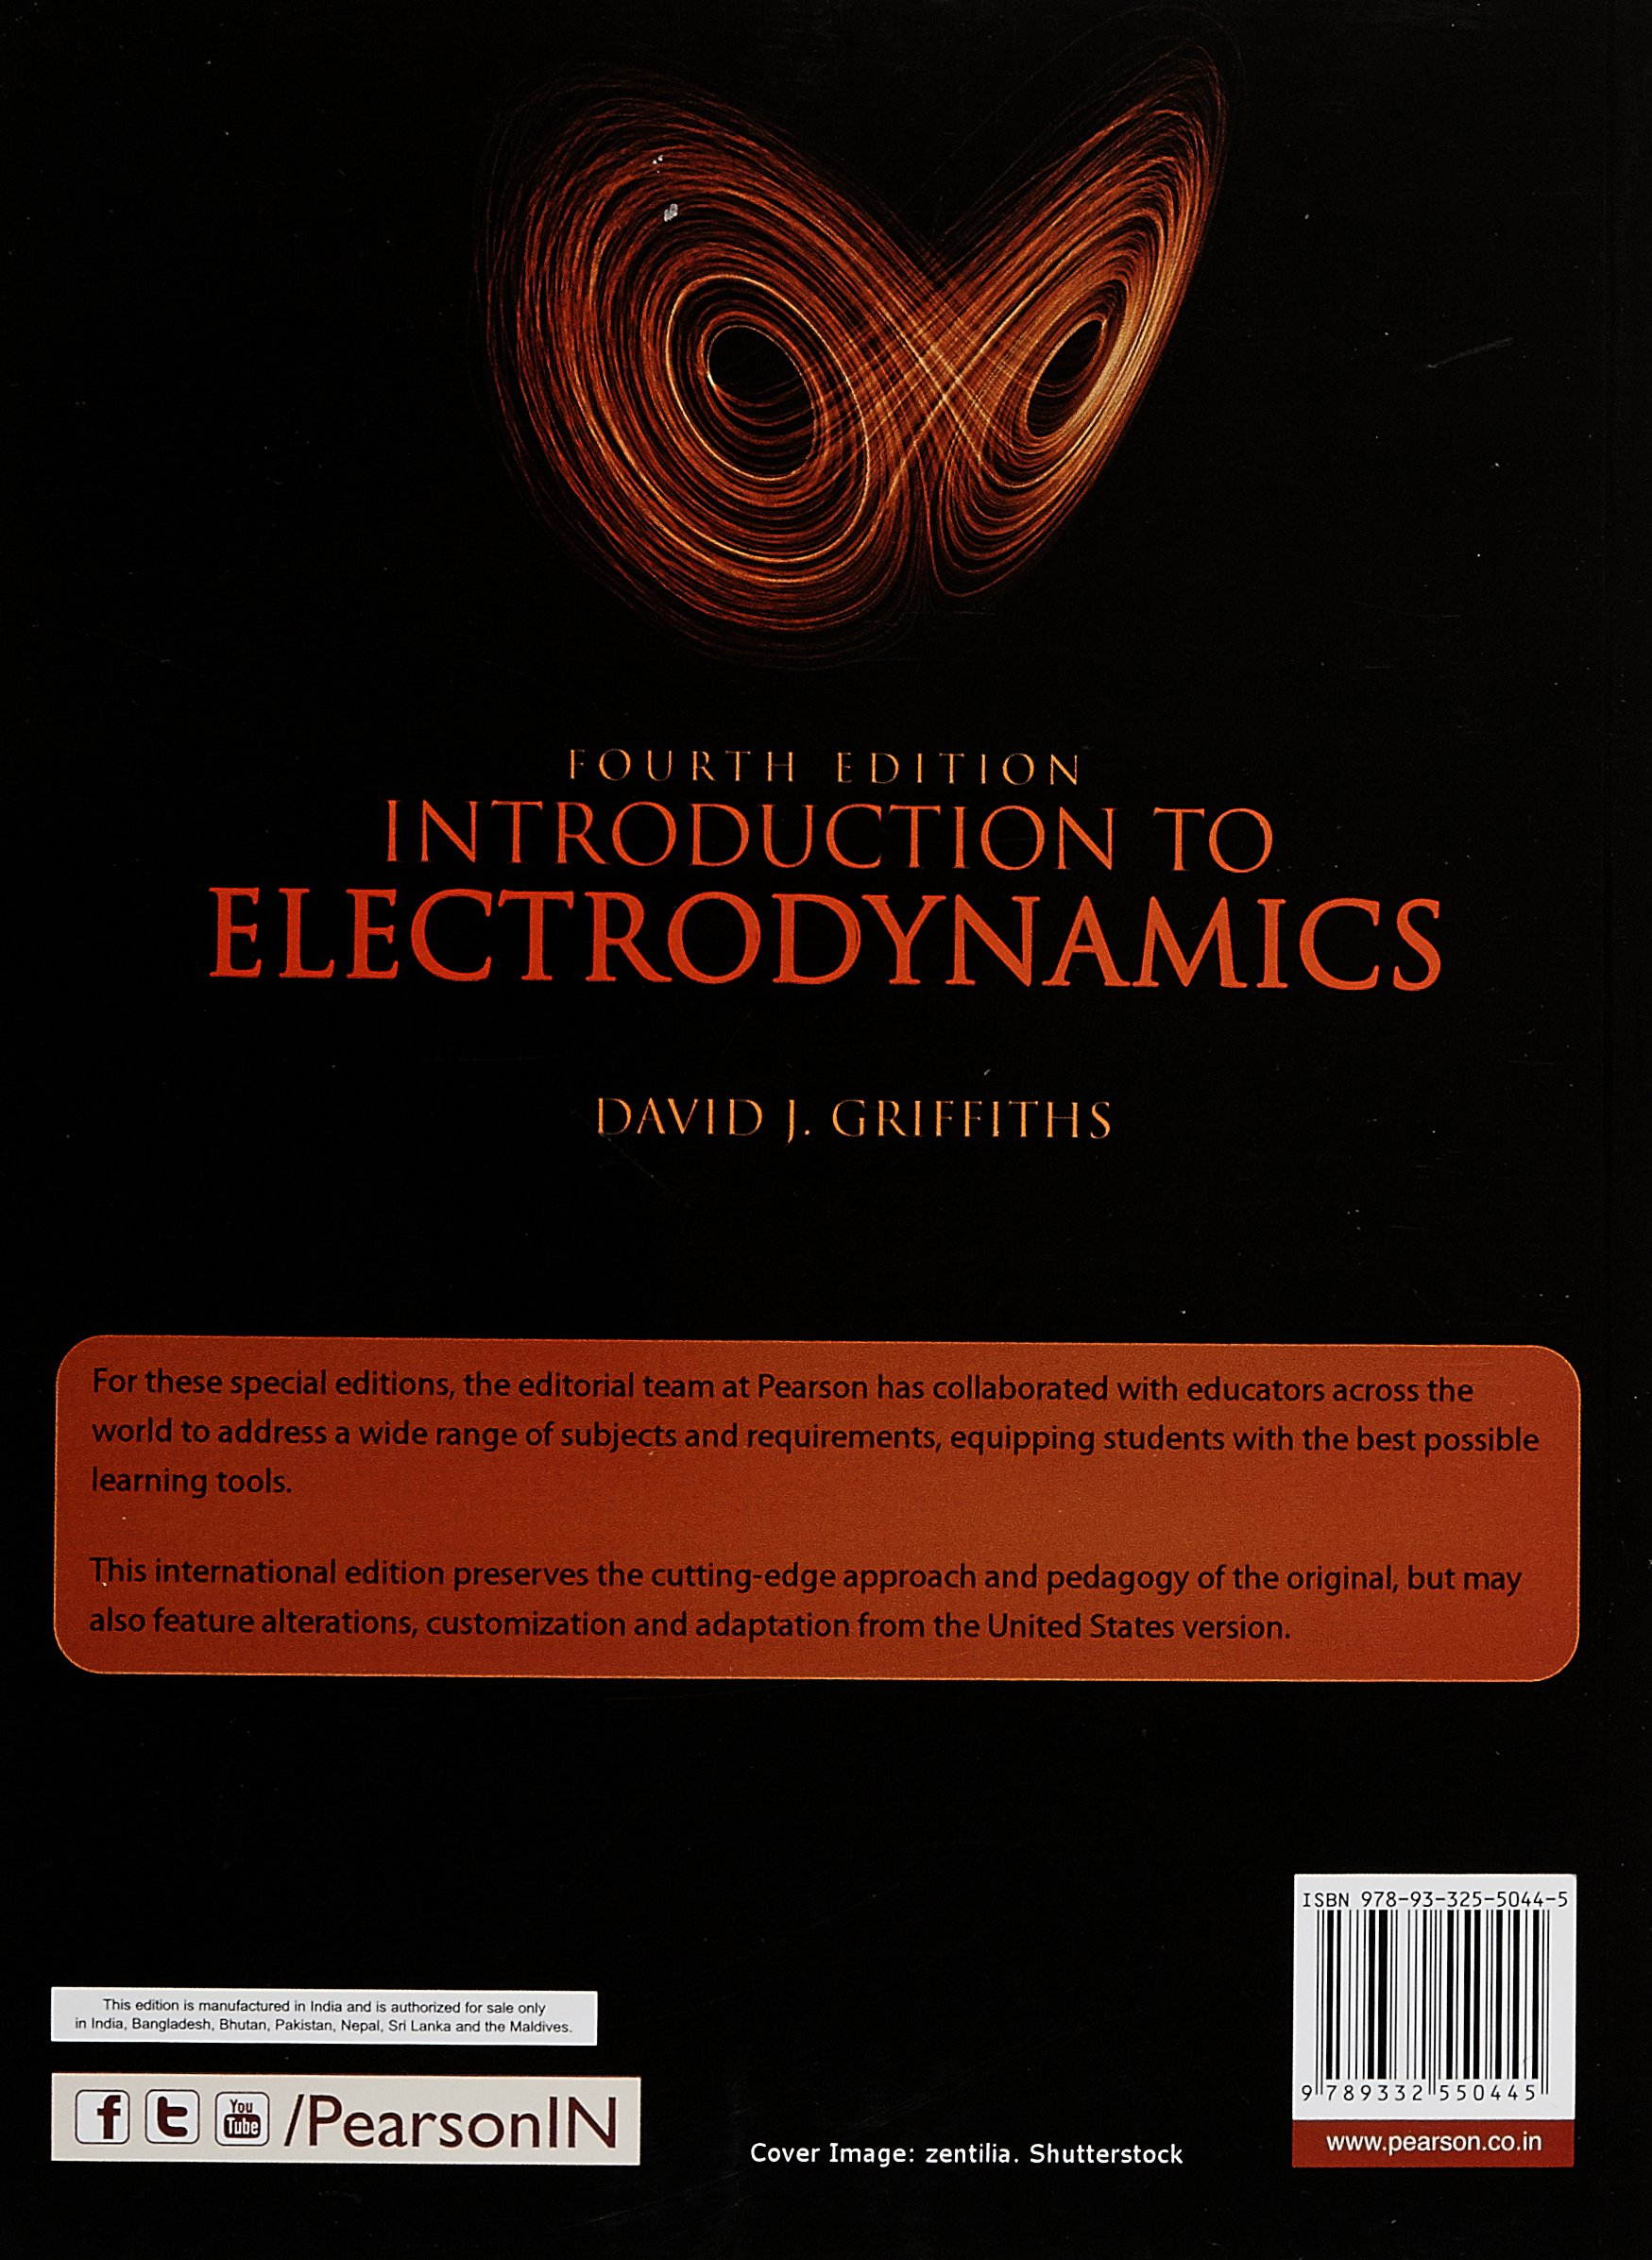 Griffiths electrodynamics 4th edition pdf